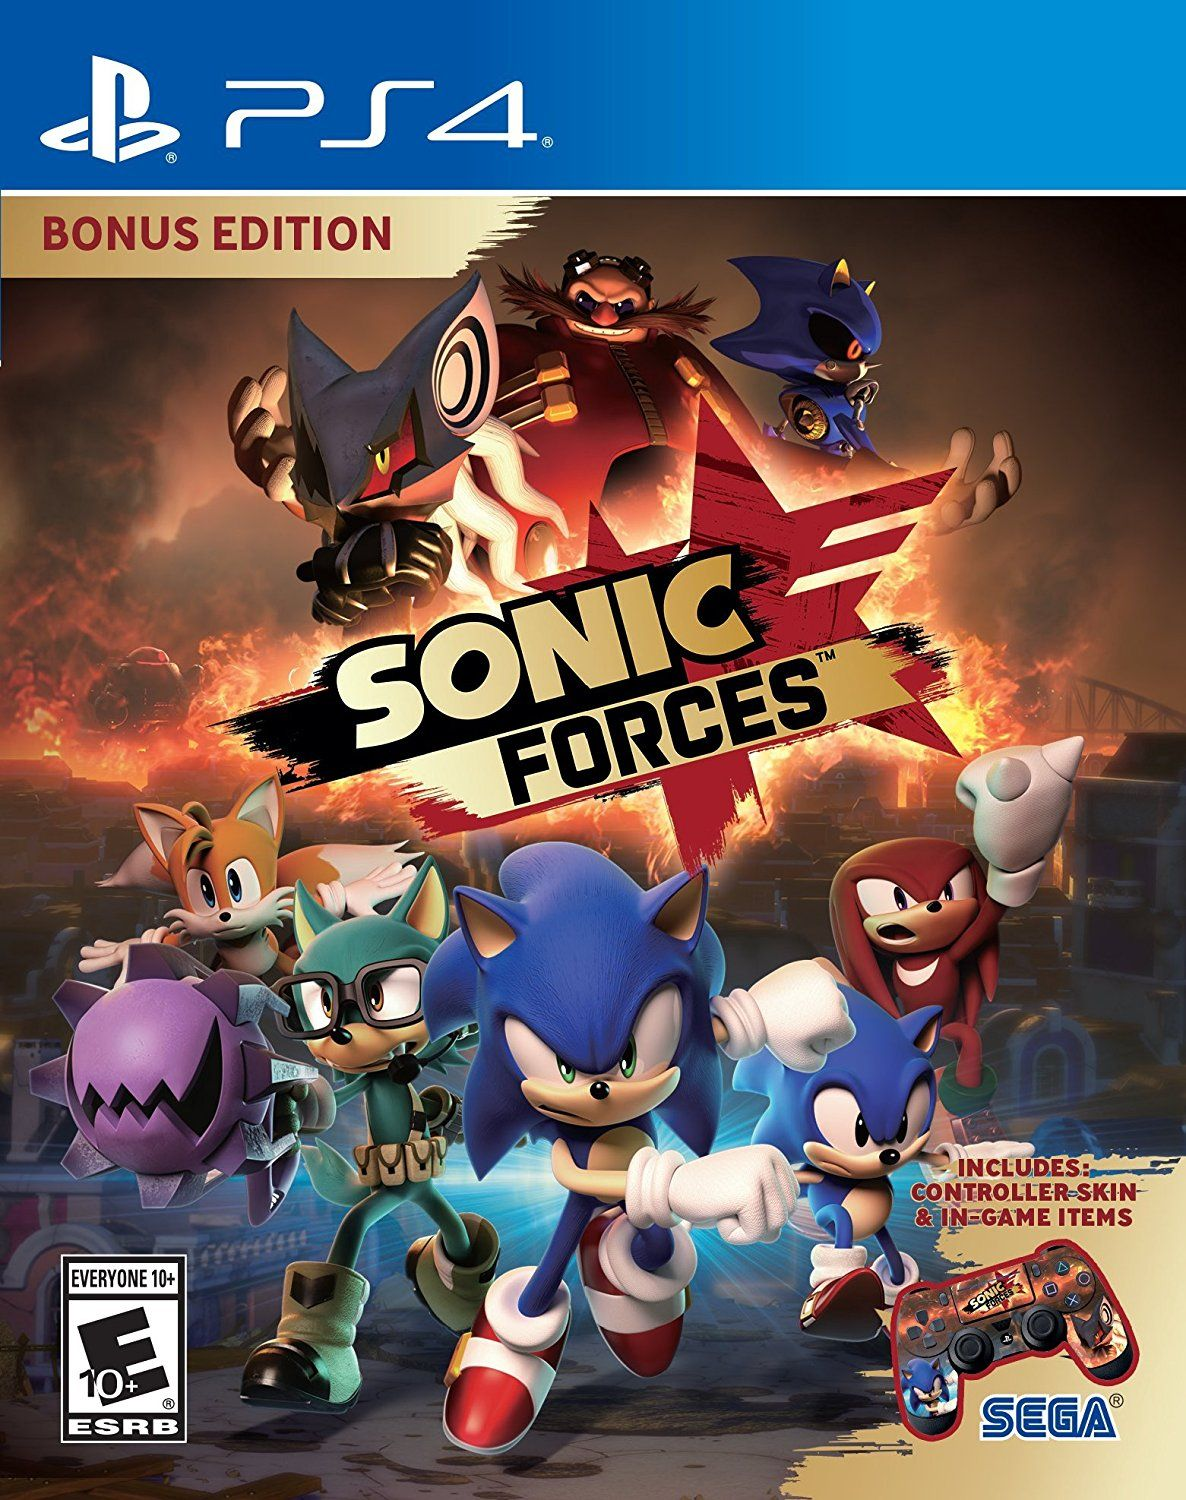 Sonic Forces Game Cover Ps4 Bonus Edition Video Games In 2018 Nba 2k18 Tip Off Reg 3